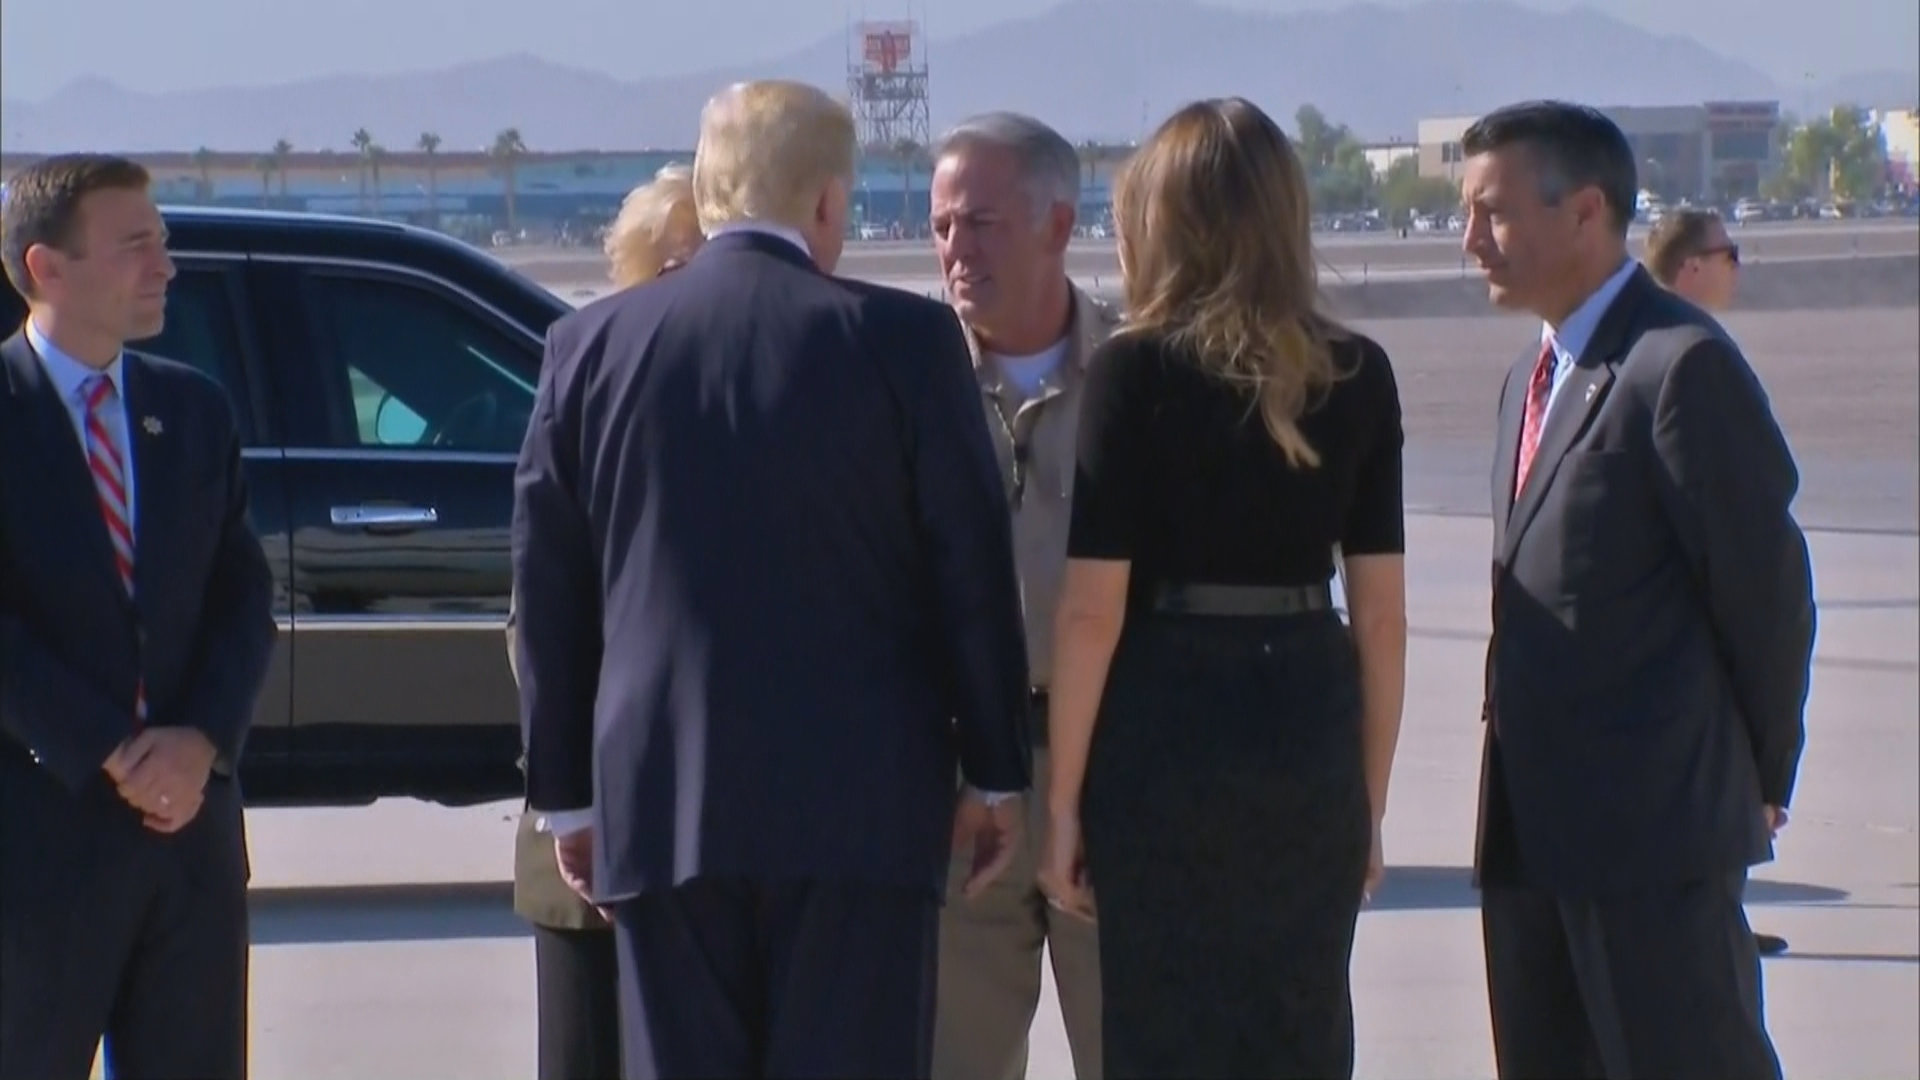 President Donald Trump and first lady Melania Trump meet with Las Vegas Mayor Carolyn Goodman, LVMPD Sheriff Joseph Lombardo and Nevada Gov. Brian Sandoval on Wednesday, Oct. 4, 2017, at McCarran International Airport in Las Vegas. (KSNV)